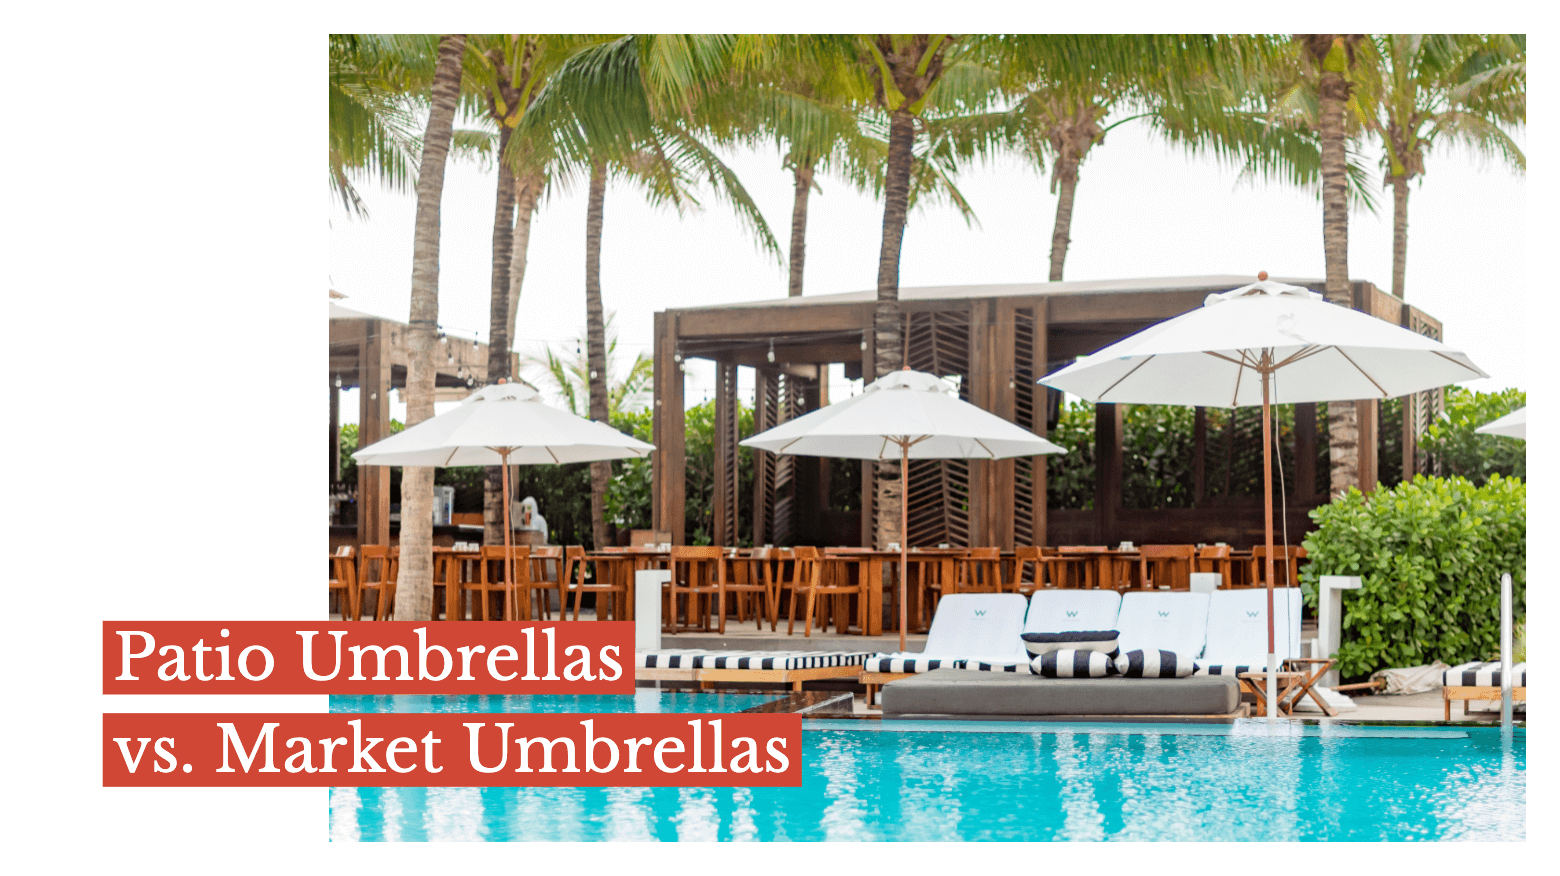 Patio Umbrellas vs. Market Umbrellas